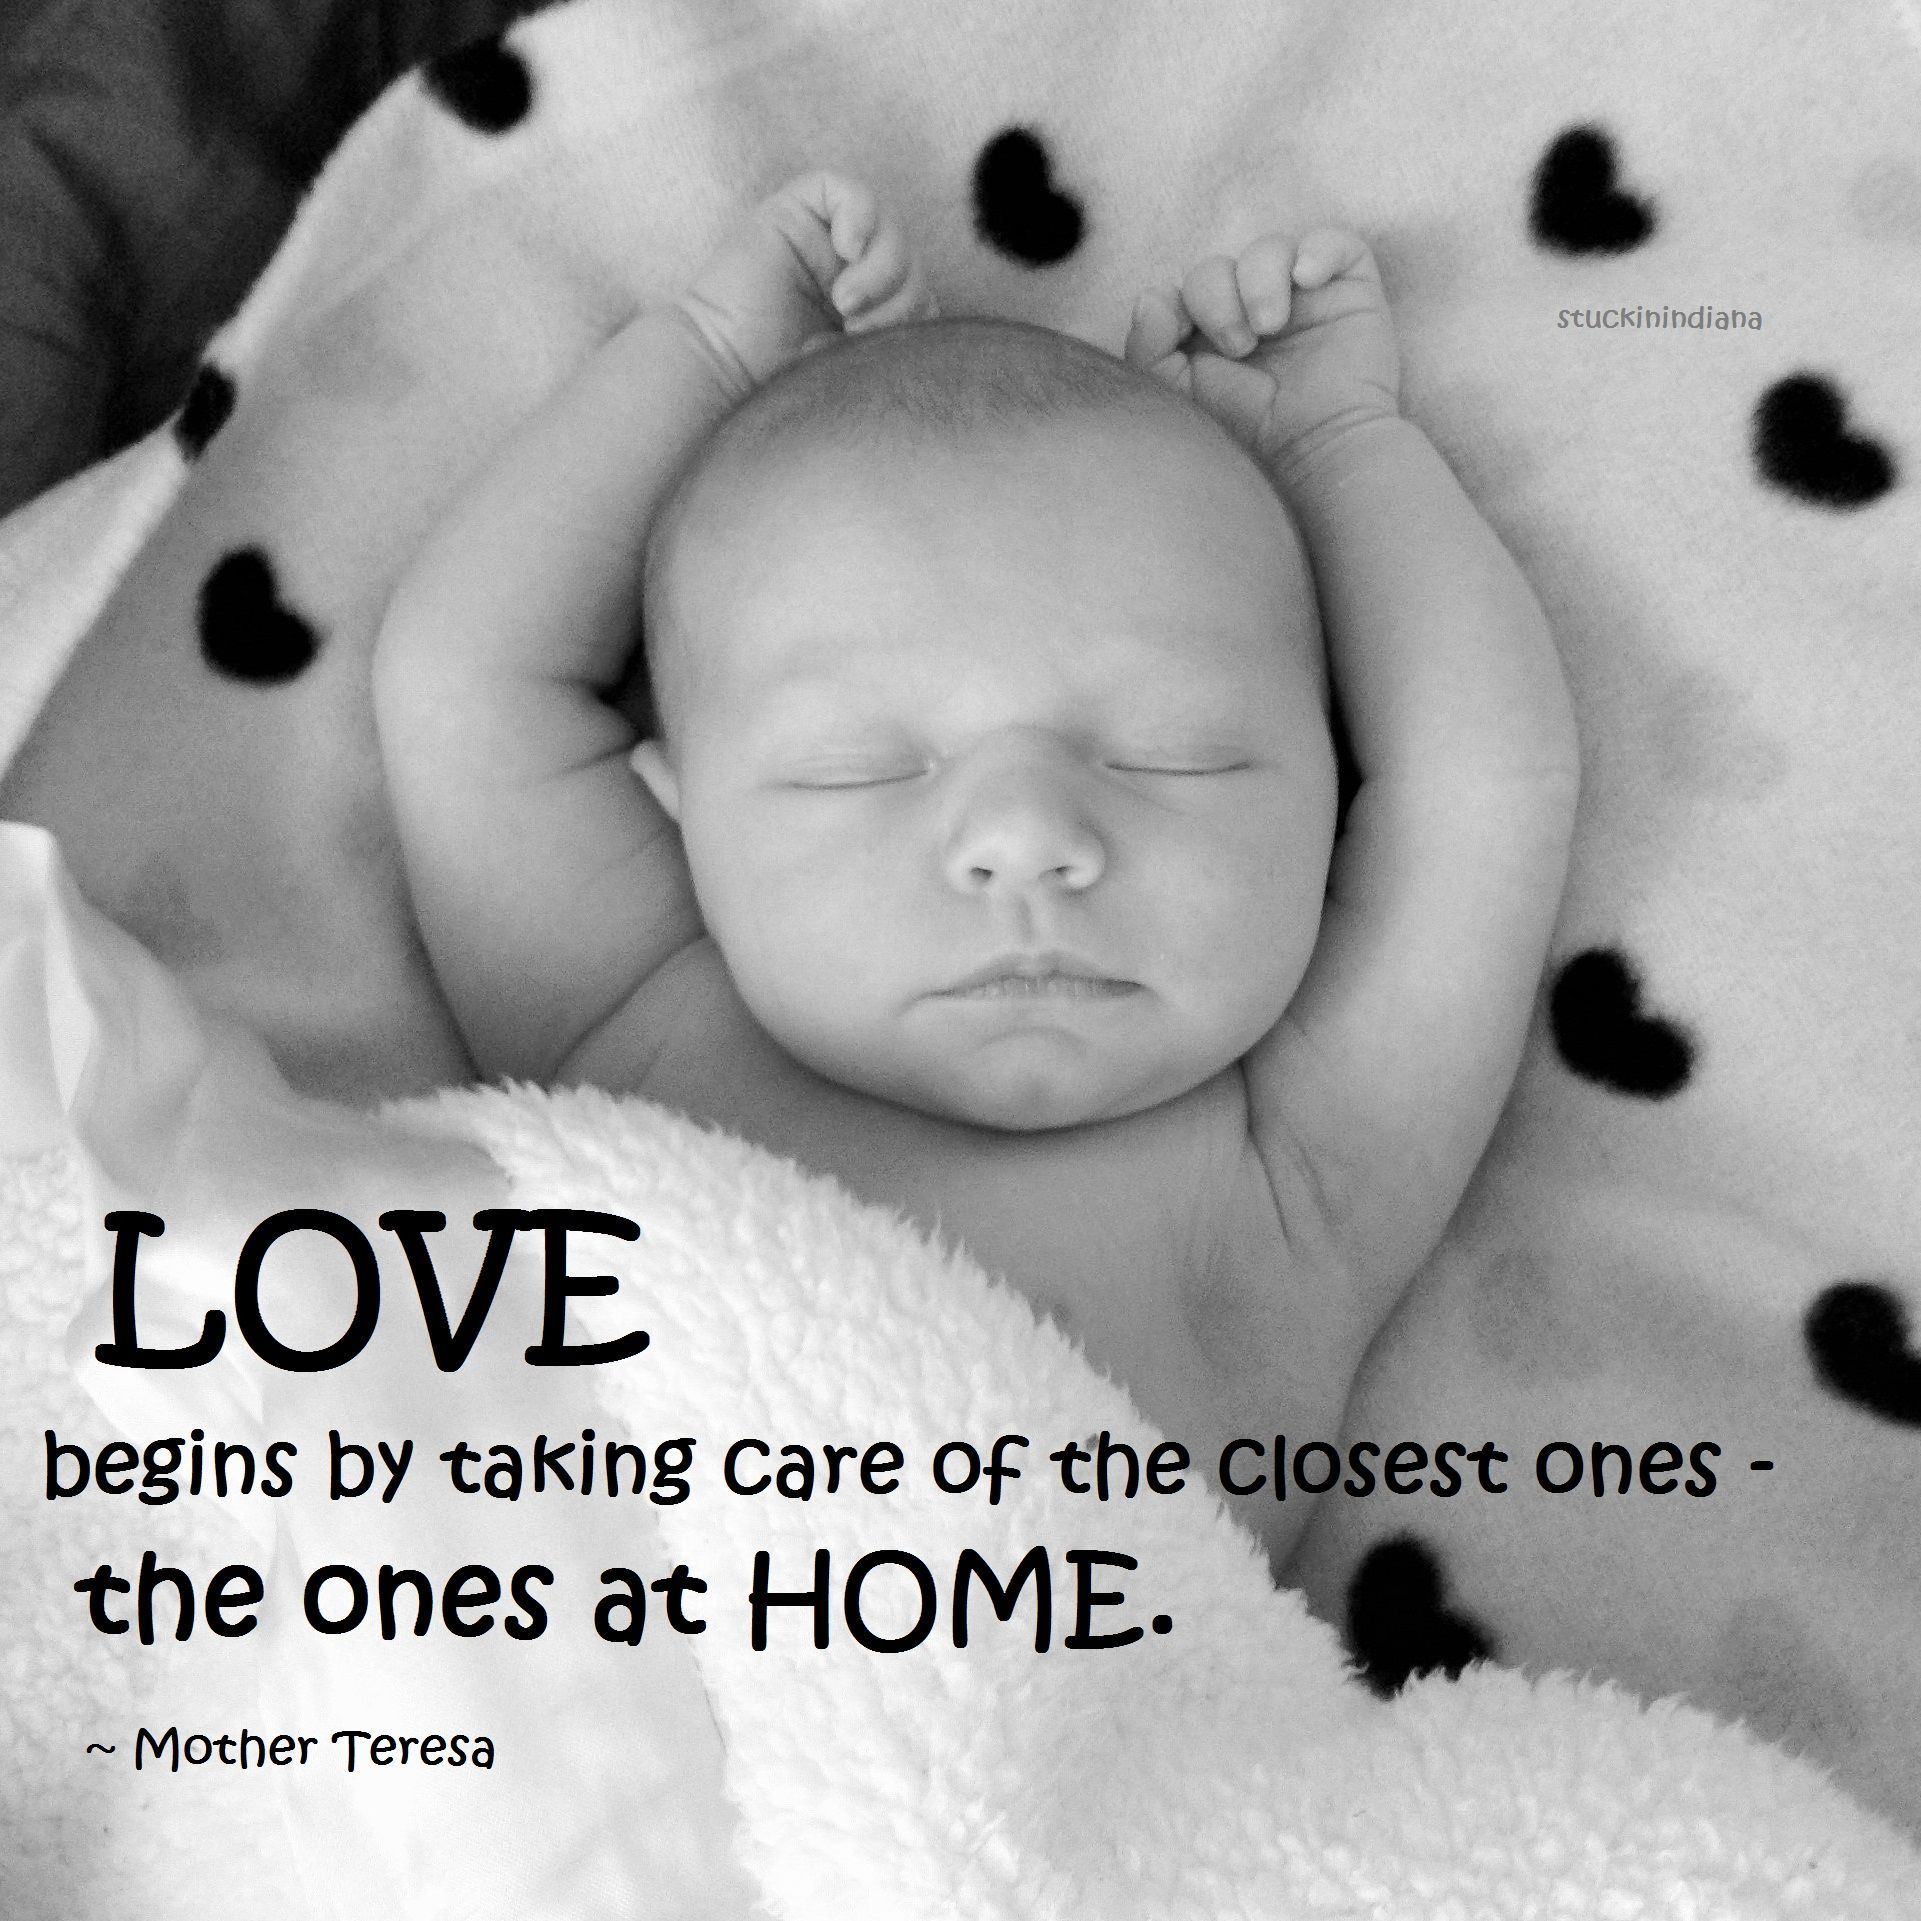 LOVE begins by taking care of the closest ones the ones at HOME Family MattersBaby BabyMother Teresa QuotesThe